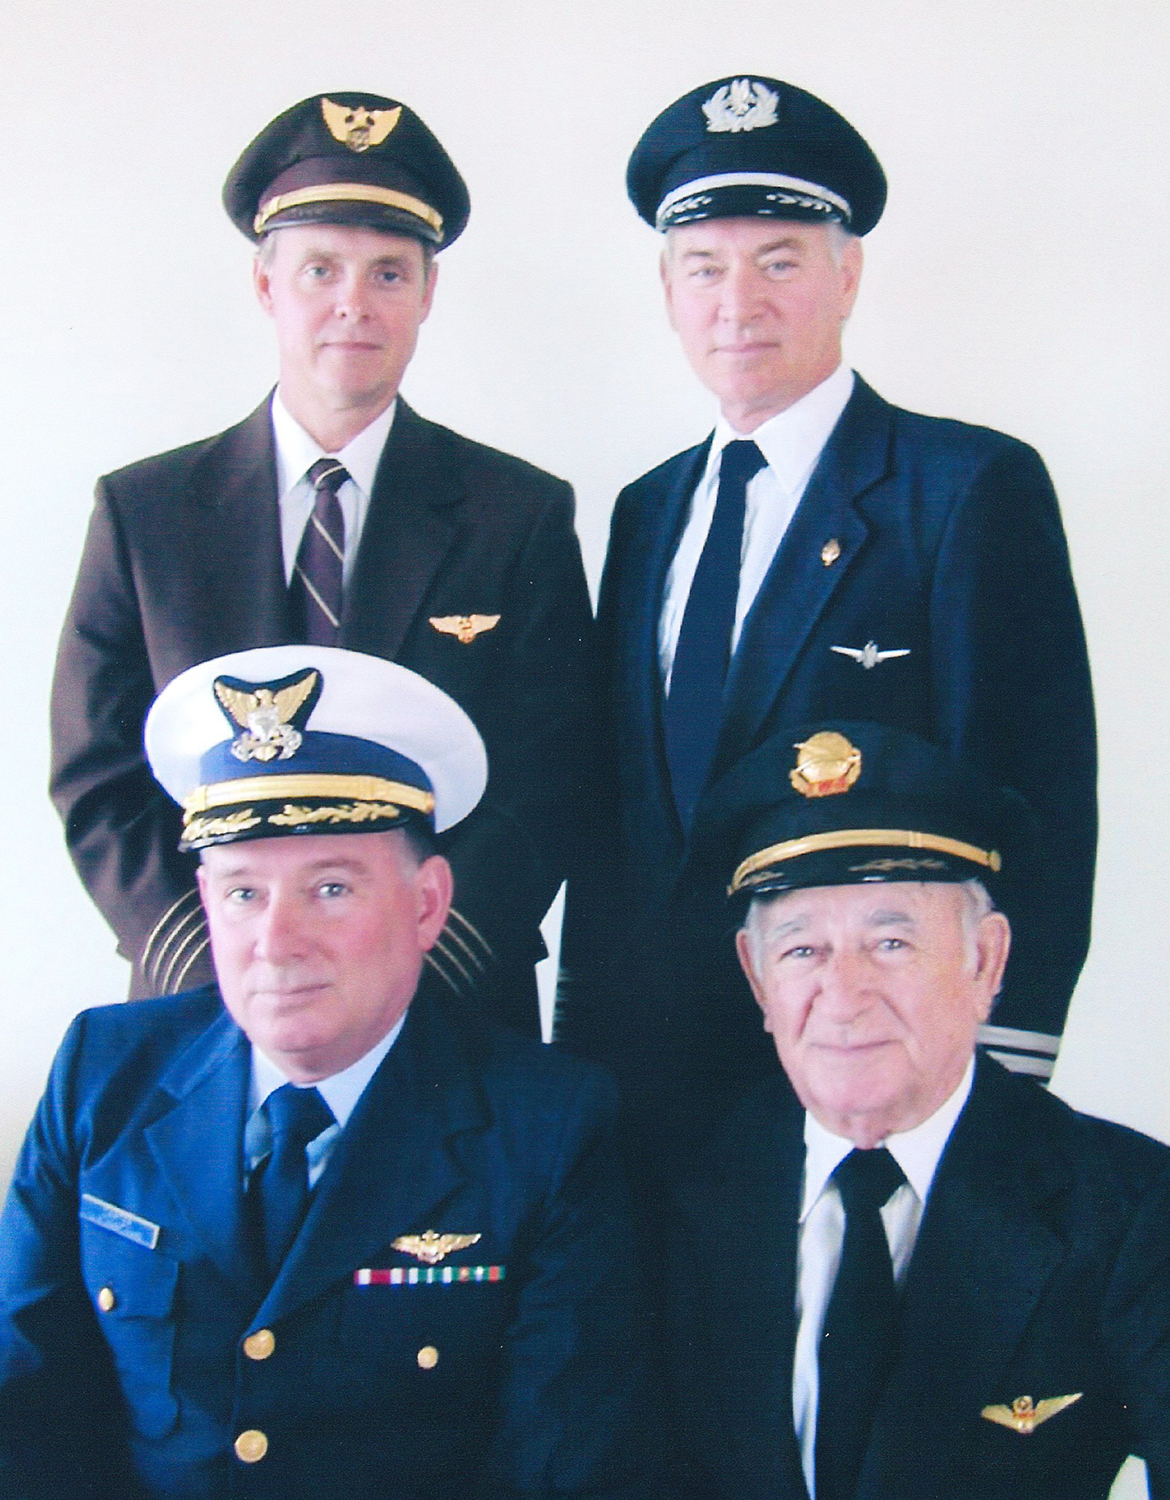 Nick Carter (top right) with his father and brothers, all pilots, 1995.